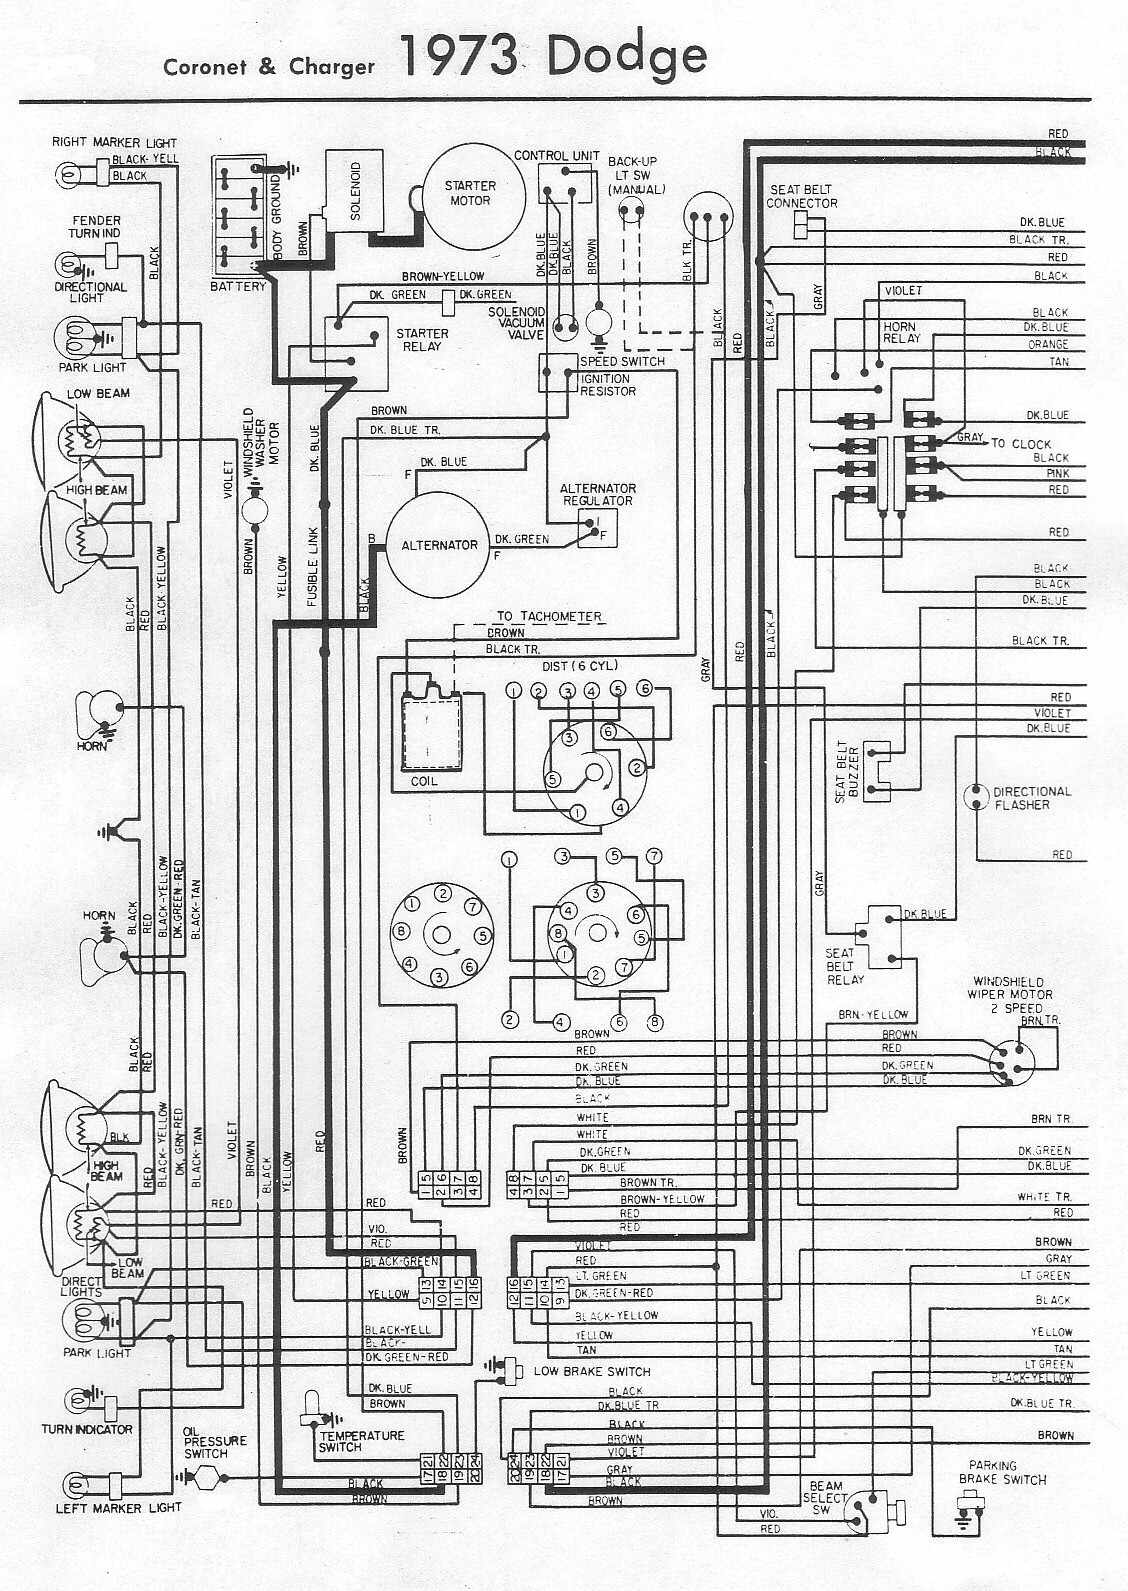 Nice berlingo wiring diagram contemporary simplicity wiring diagram nice citroen relay wiring diagram gallery everything you need to electrical wiring diagram of 1973 dodge asfbconference2016